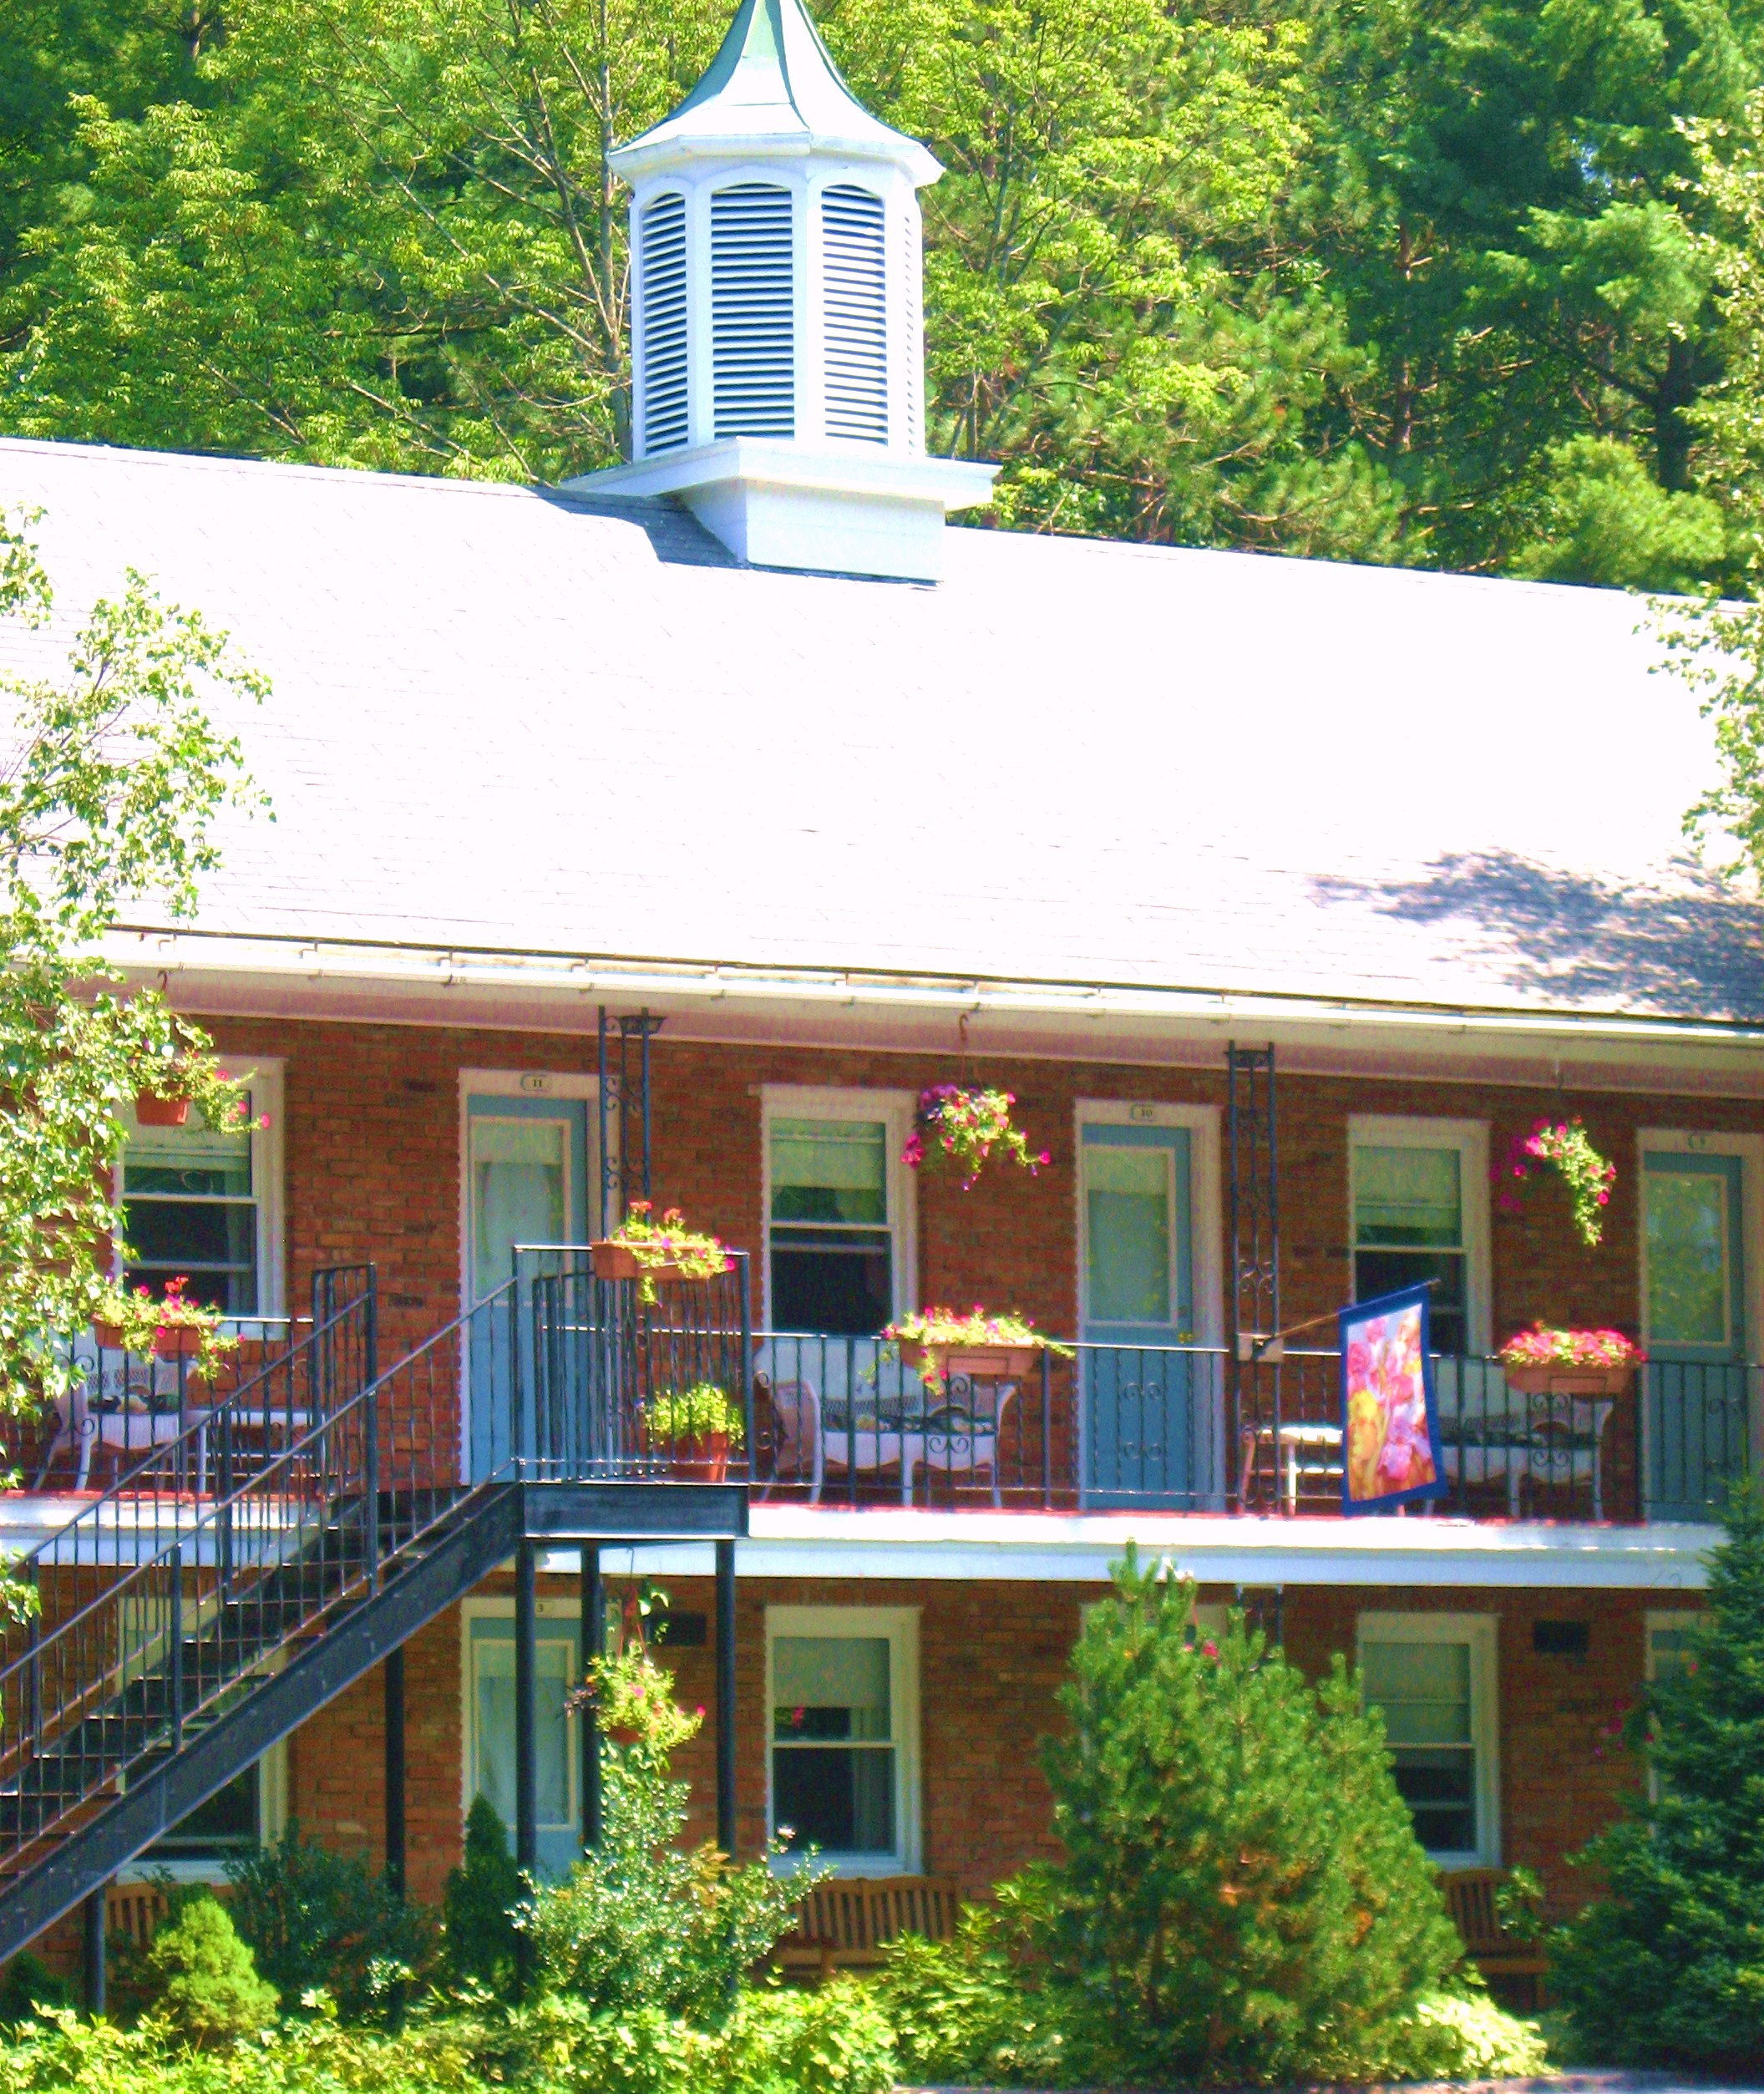 The Berkshire Hills Country Inn